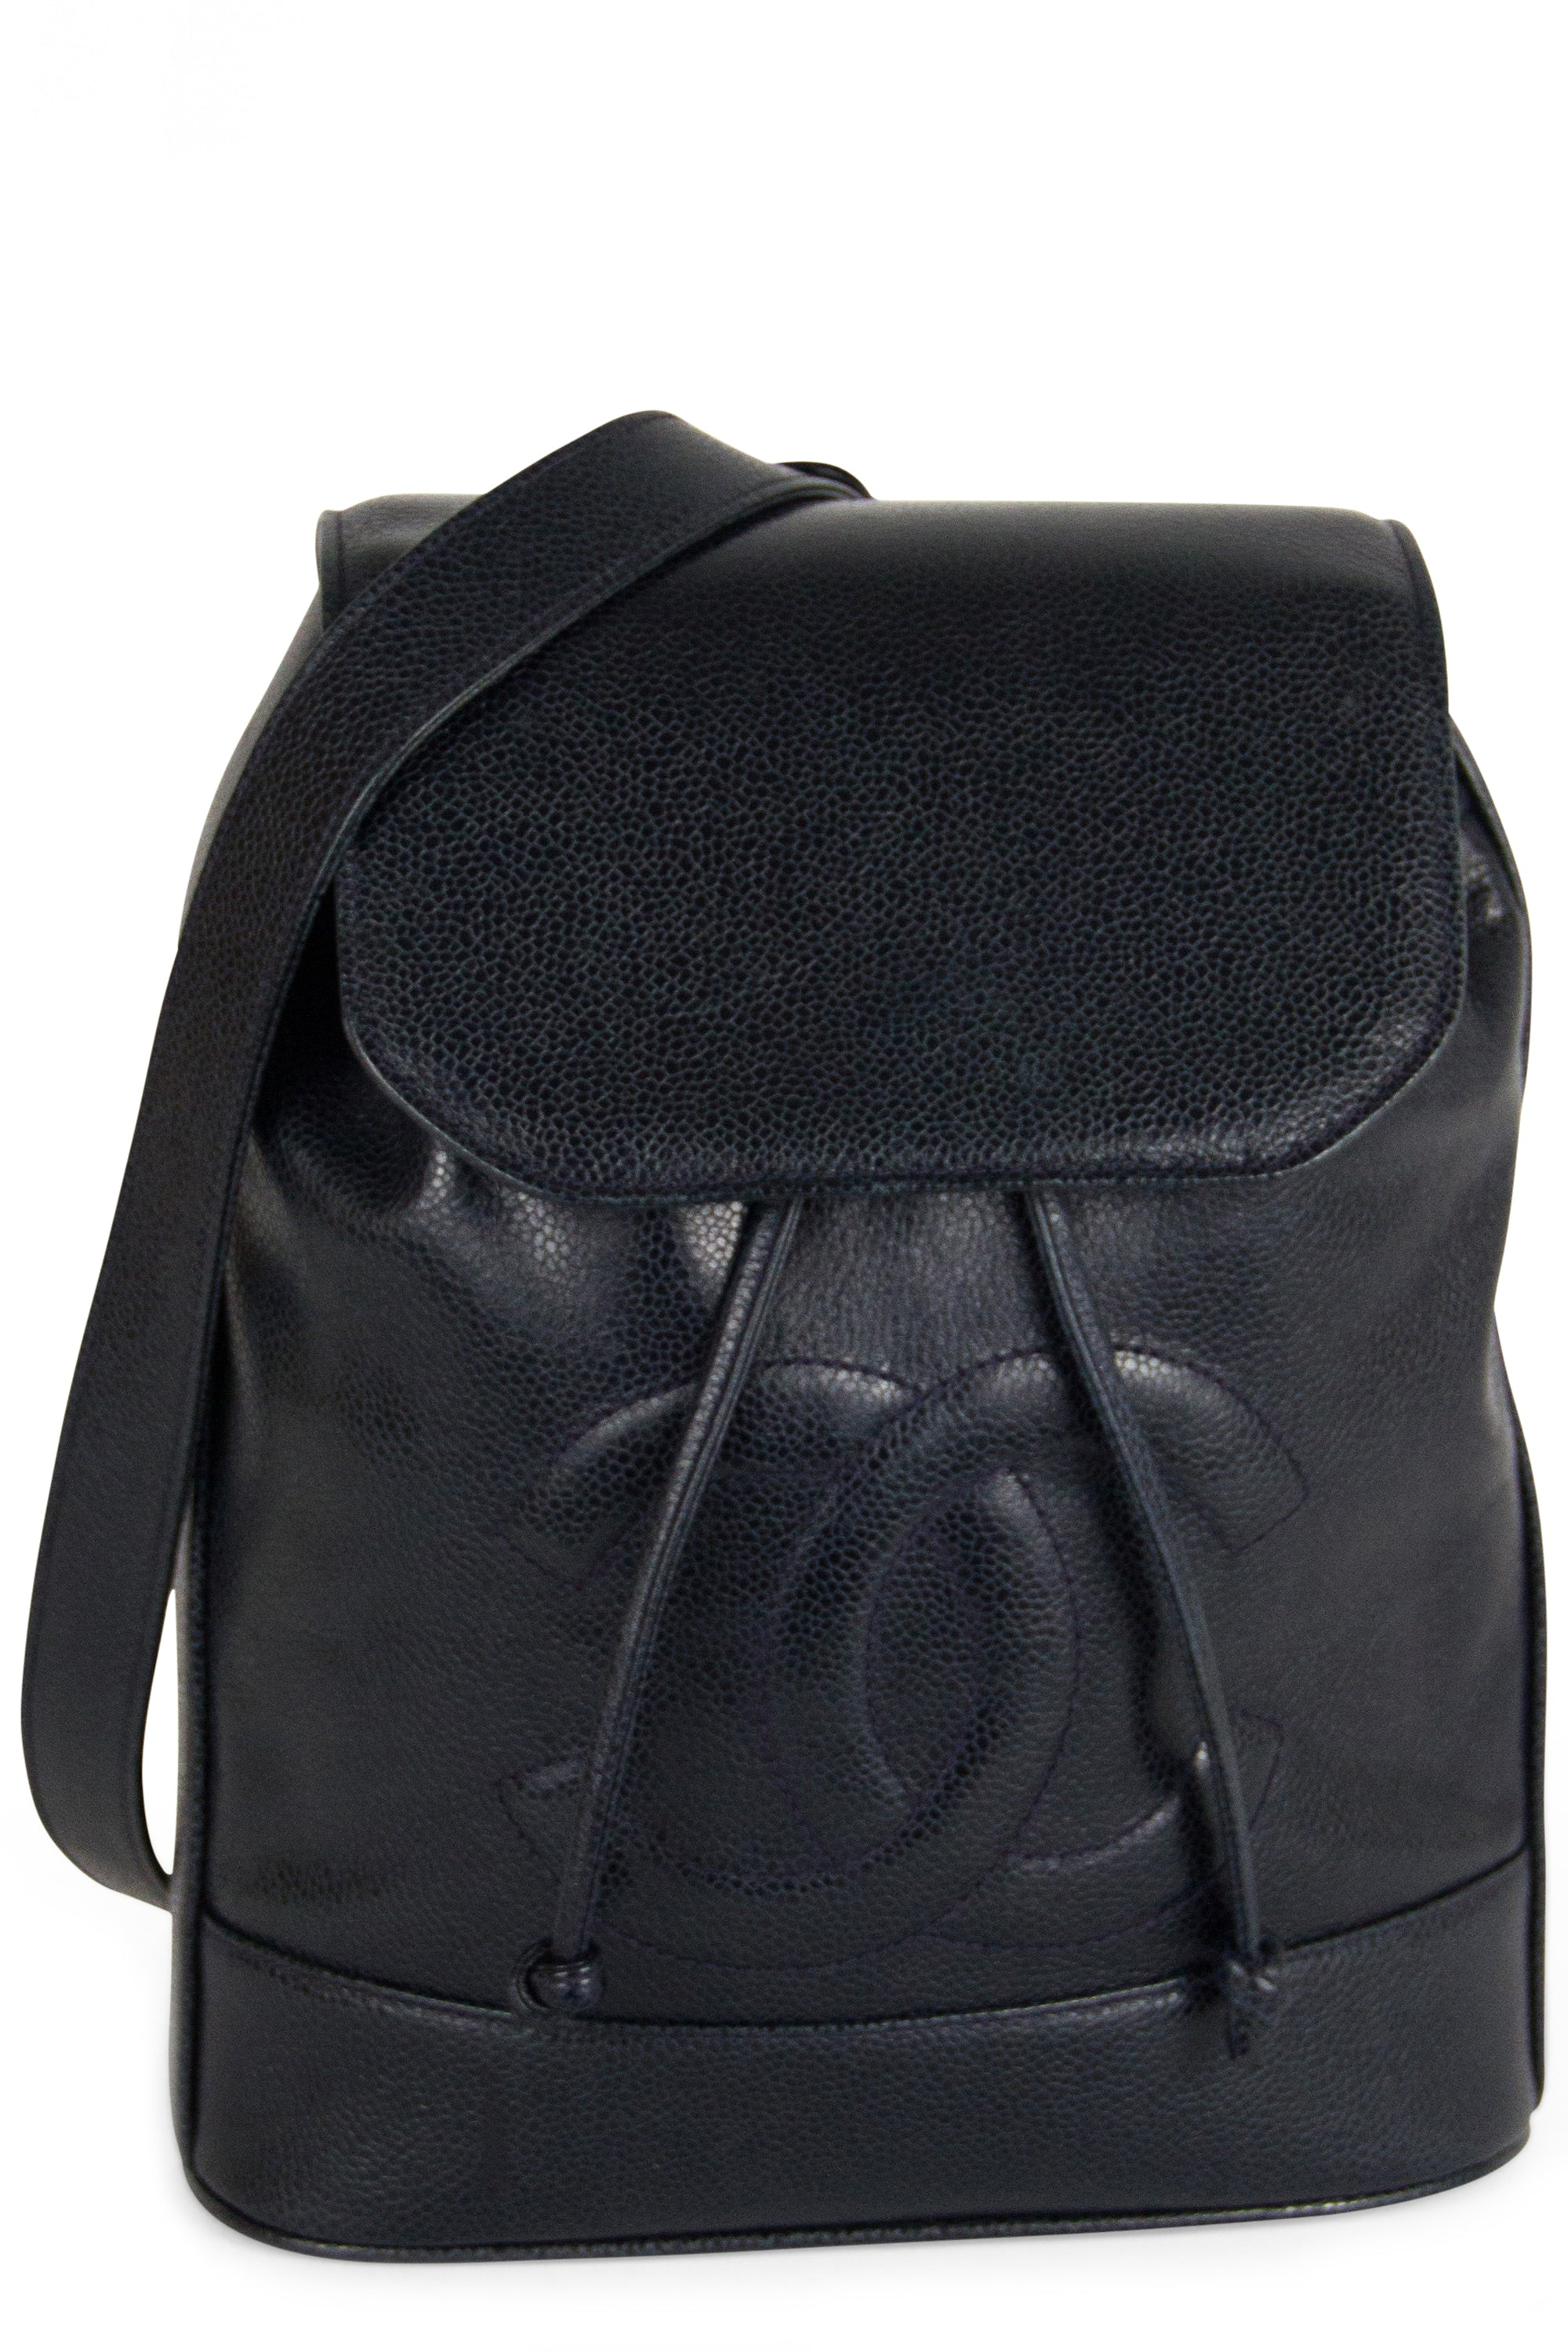 Chanel Vintage  Backpack One Strap Caviar Leather Frontalansicht Navy Blue